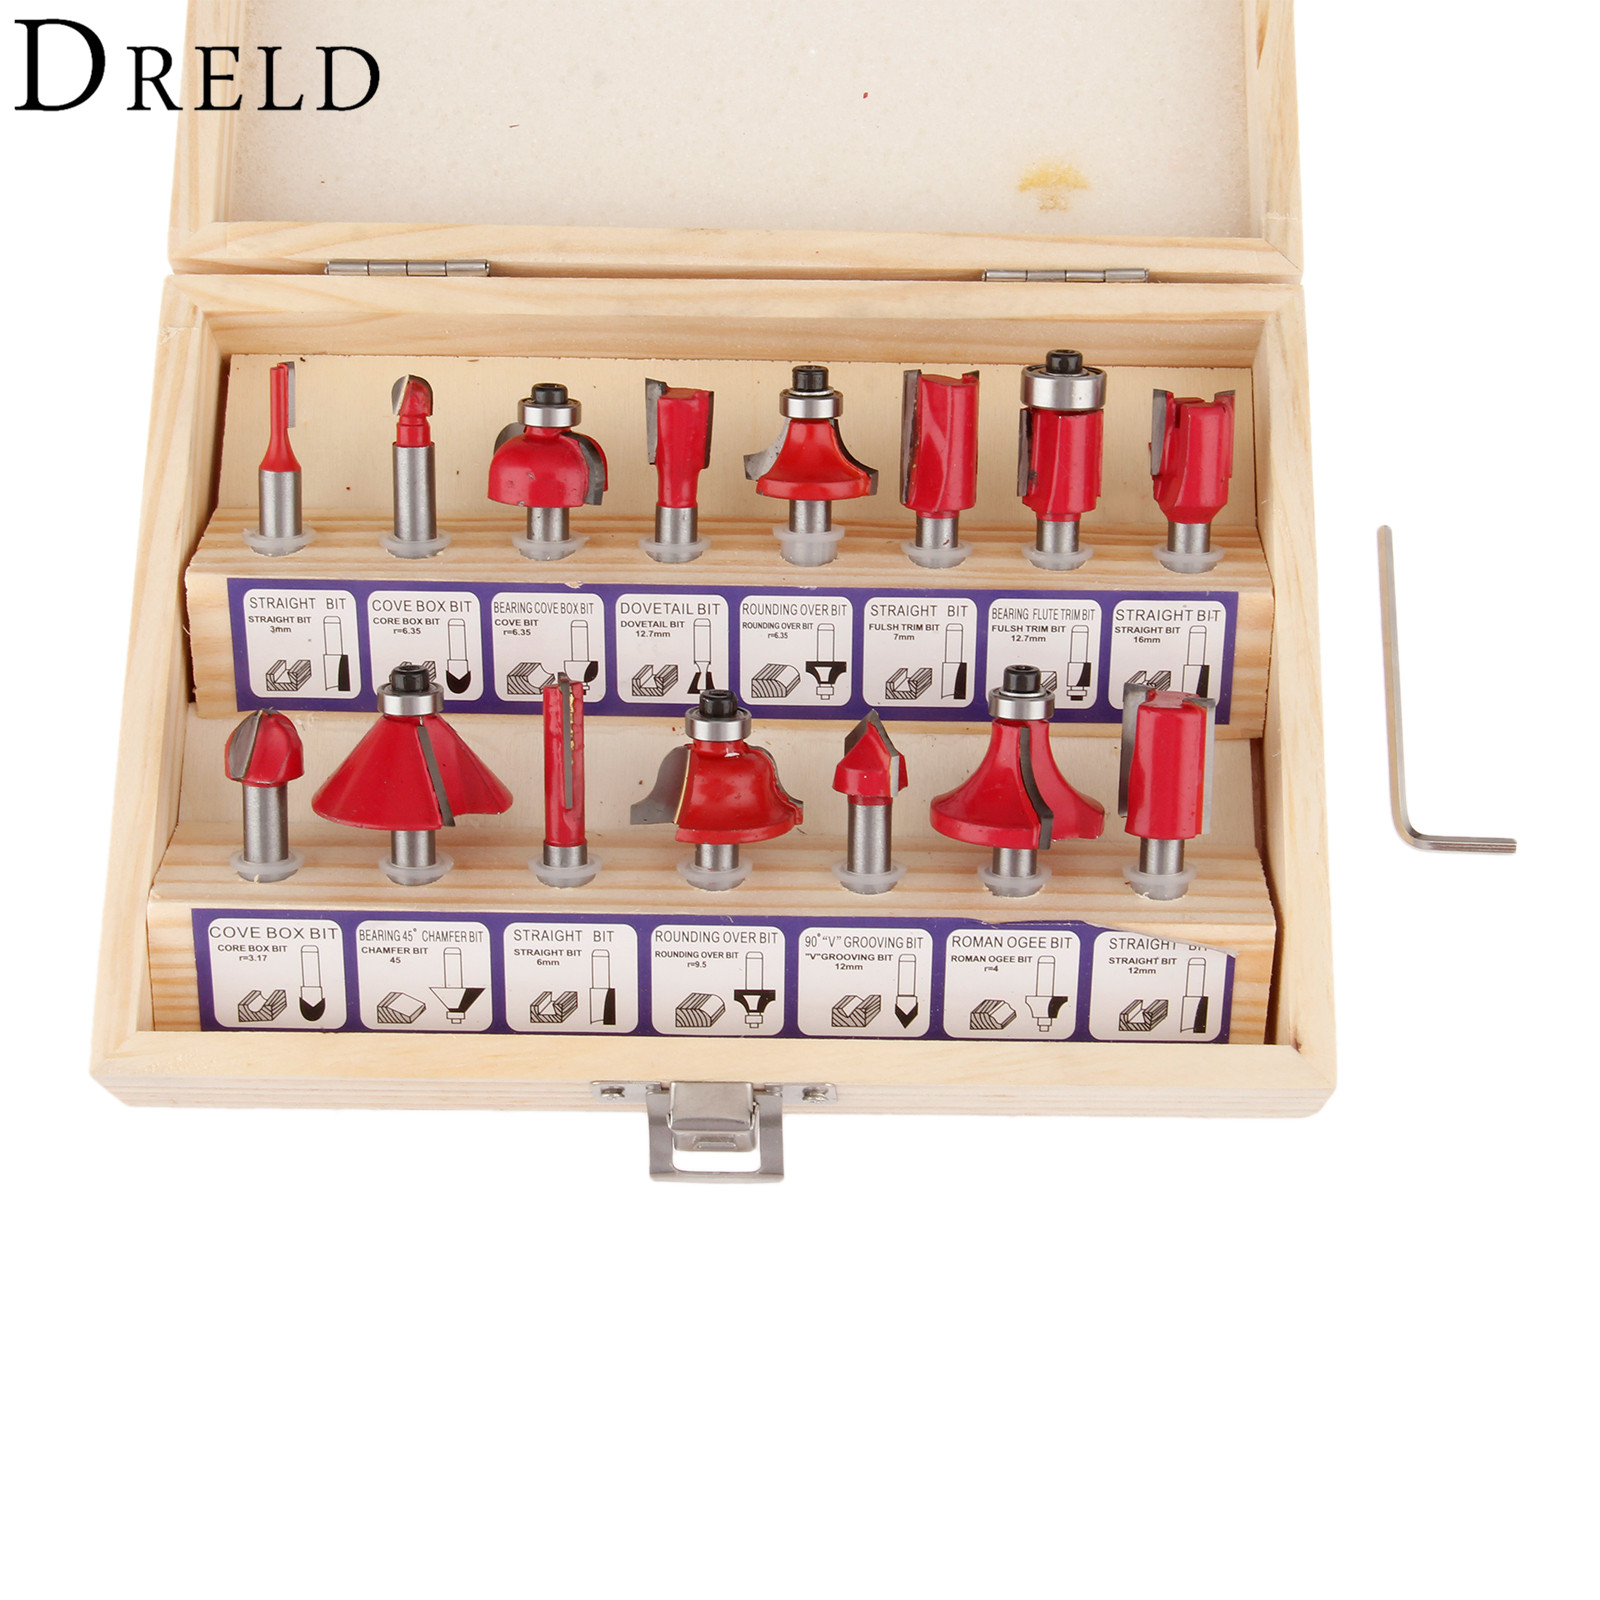 DRELD 15pcs Milling Cutter Router Bit Set 1/2 Inch (12.7mm) Shank Carbide Wood Cutter Engraving Cutting Woodworking Tools 1 2 inch shank hss milling cutters round nose cove core box router bit for woodworking milling tools